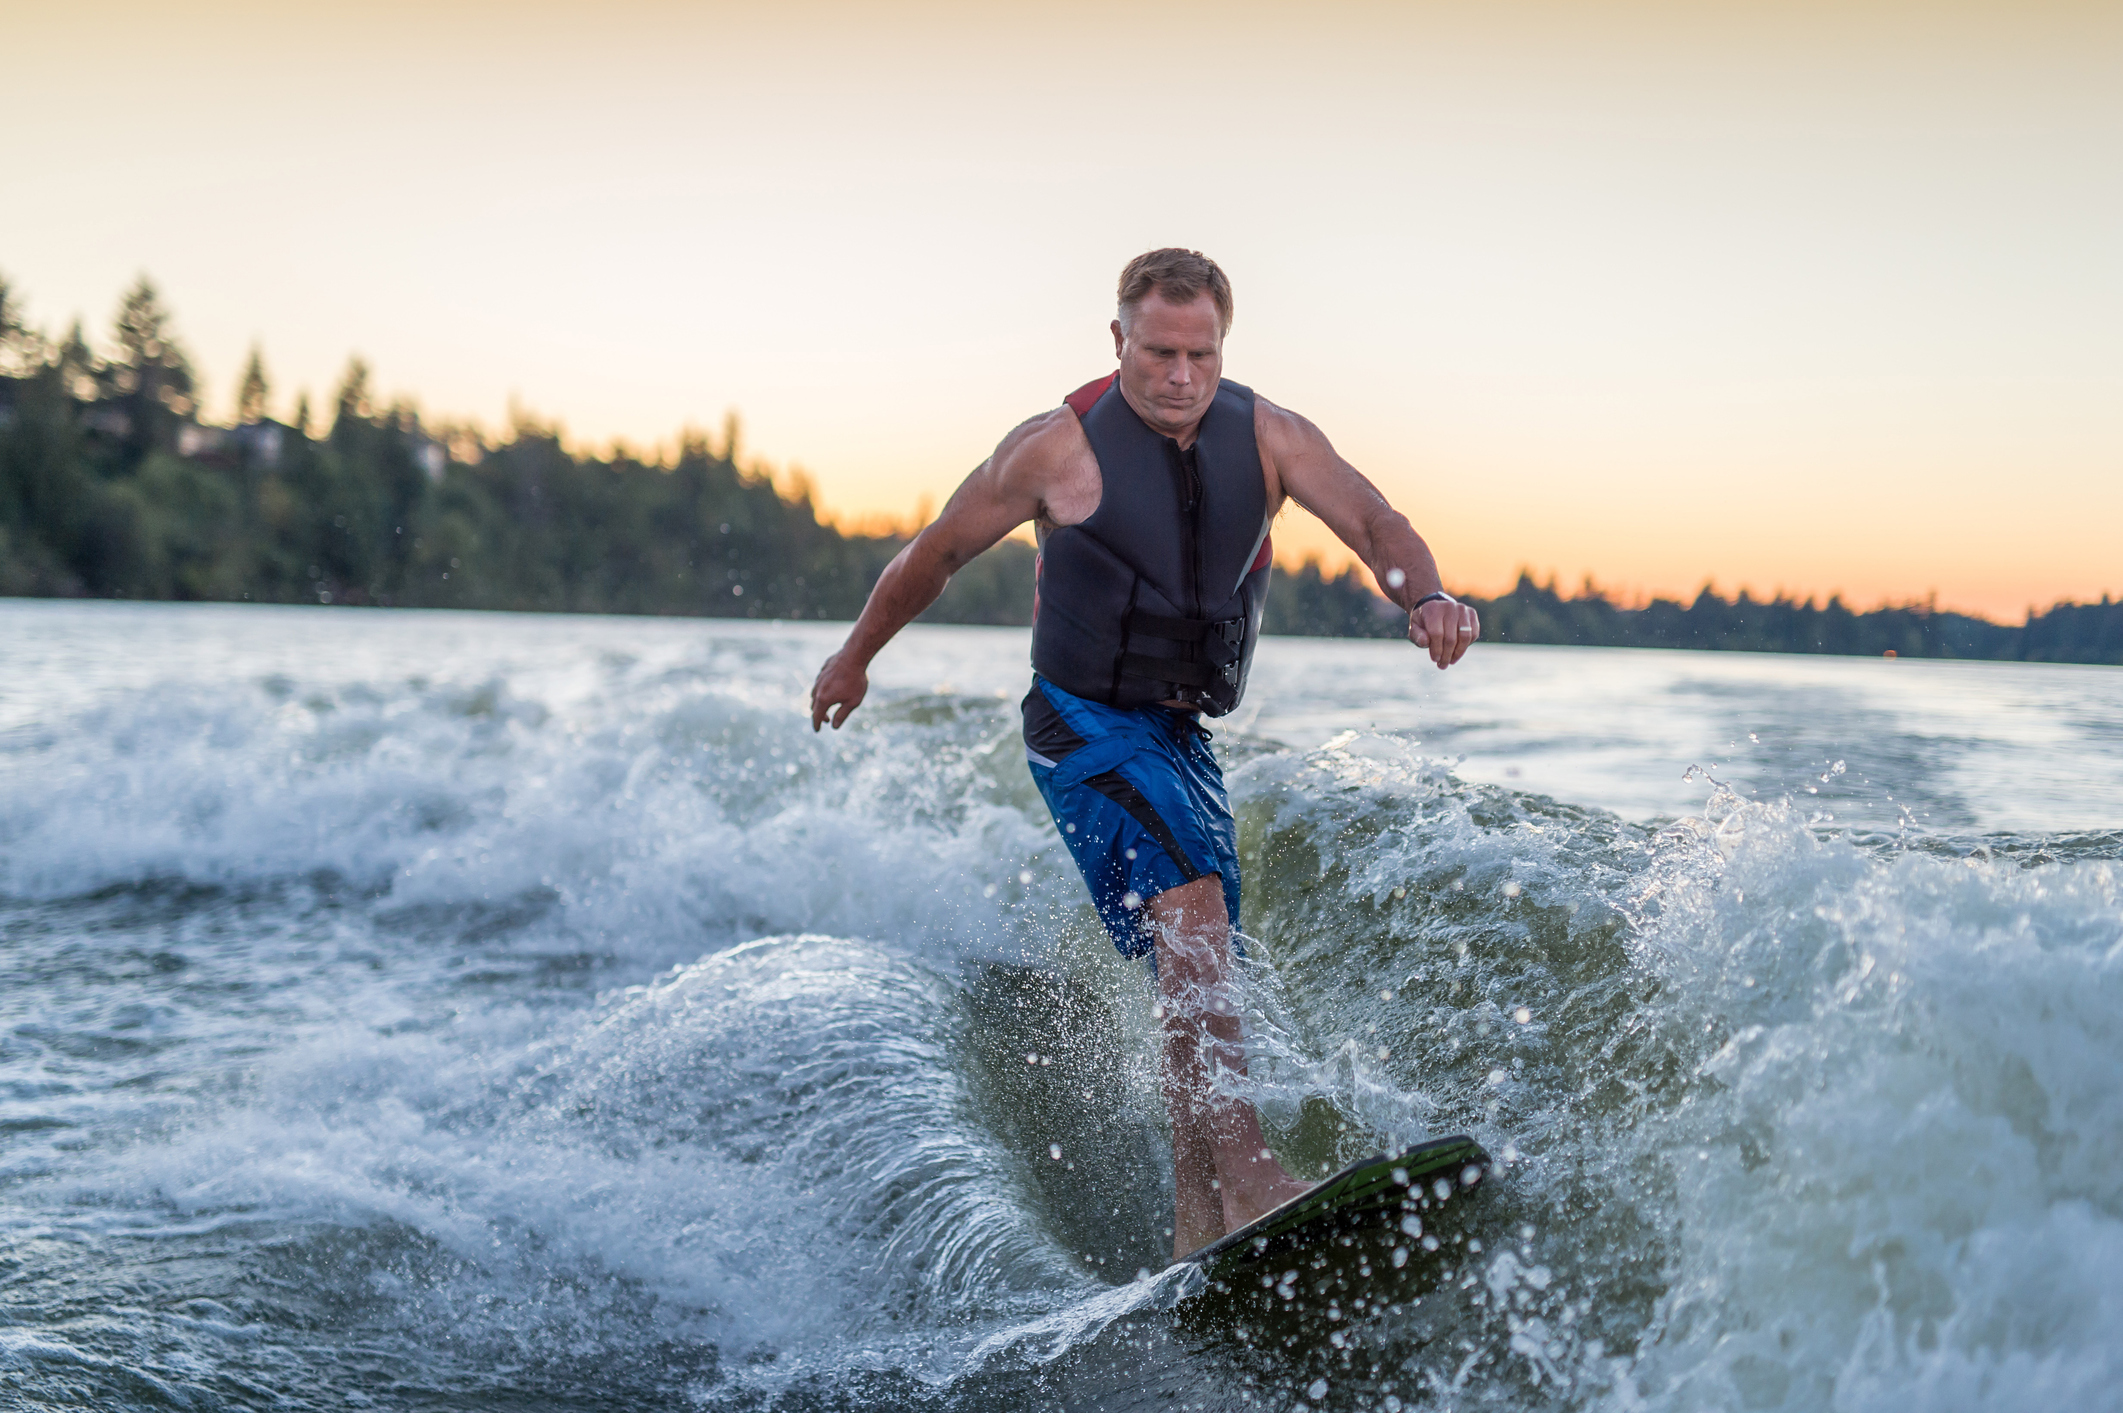 A middle aged man wakeboarding